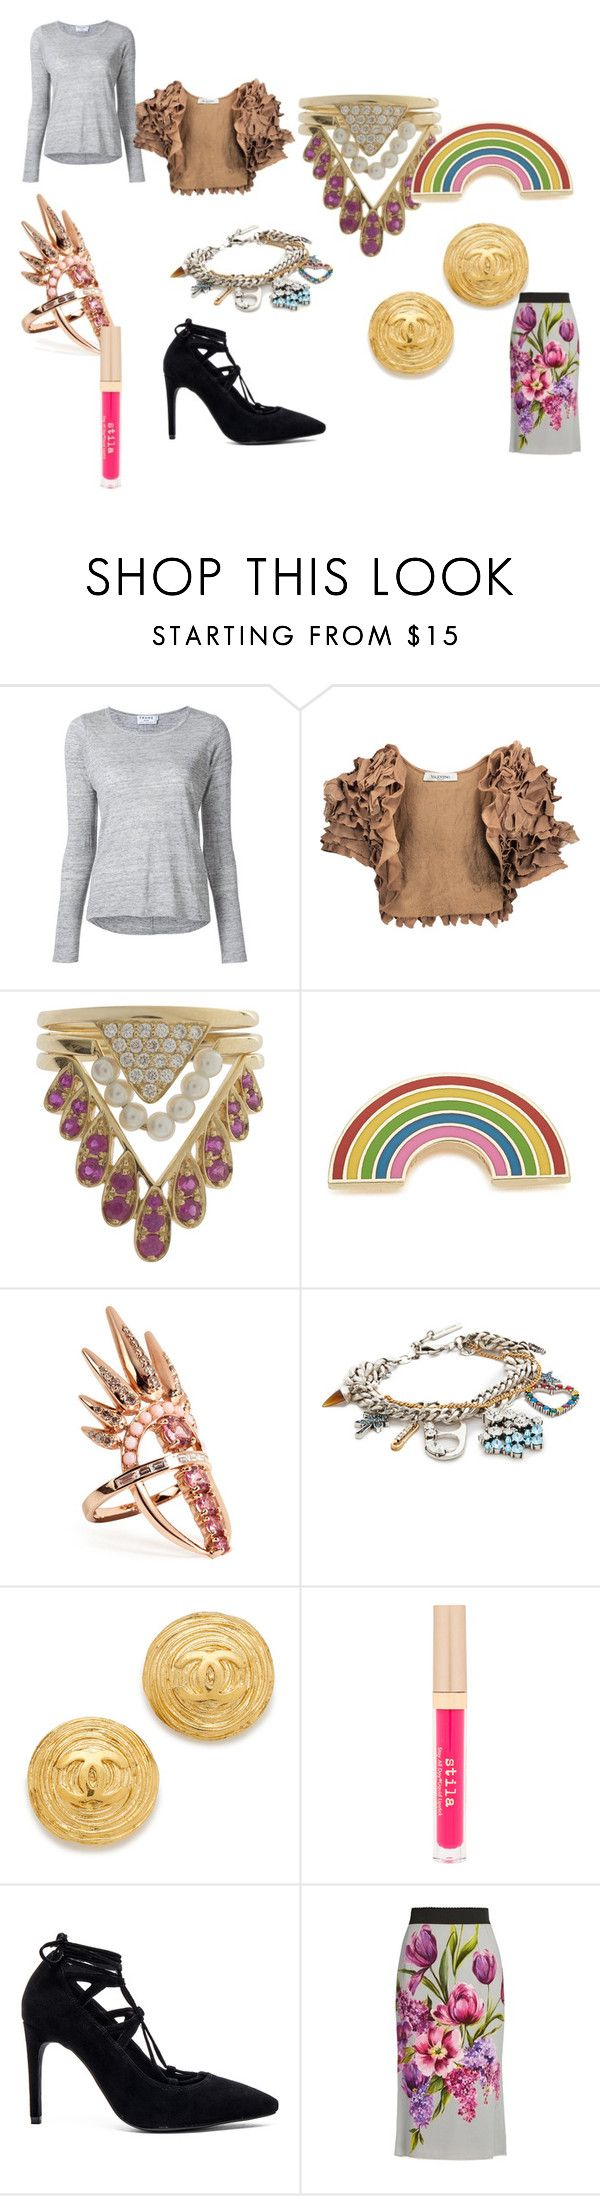 """Modalist Style"" by digitalshopping on Polyvore featuring Frame, Valentino, Yvonne Léon, Georgia Perry, Nikos Koulis, Marc Jacobs, Stila, Jeffrey Campbell and Dolce&Gabbana"